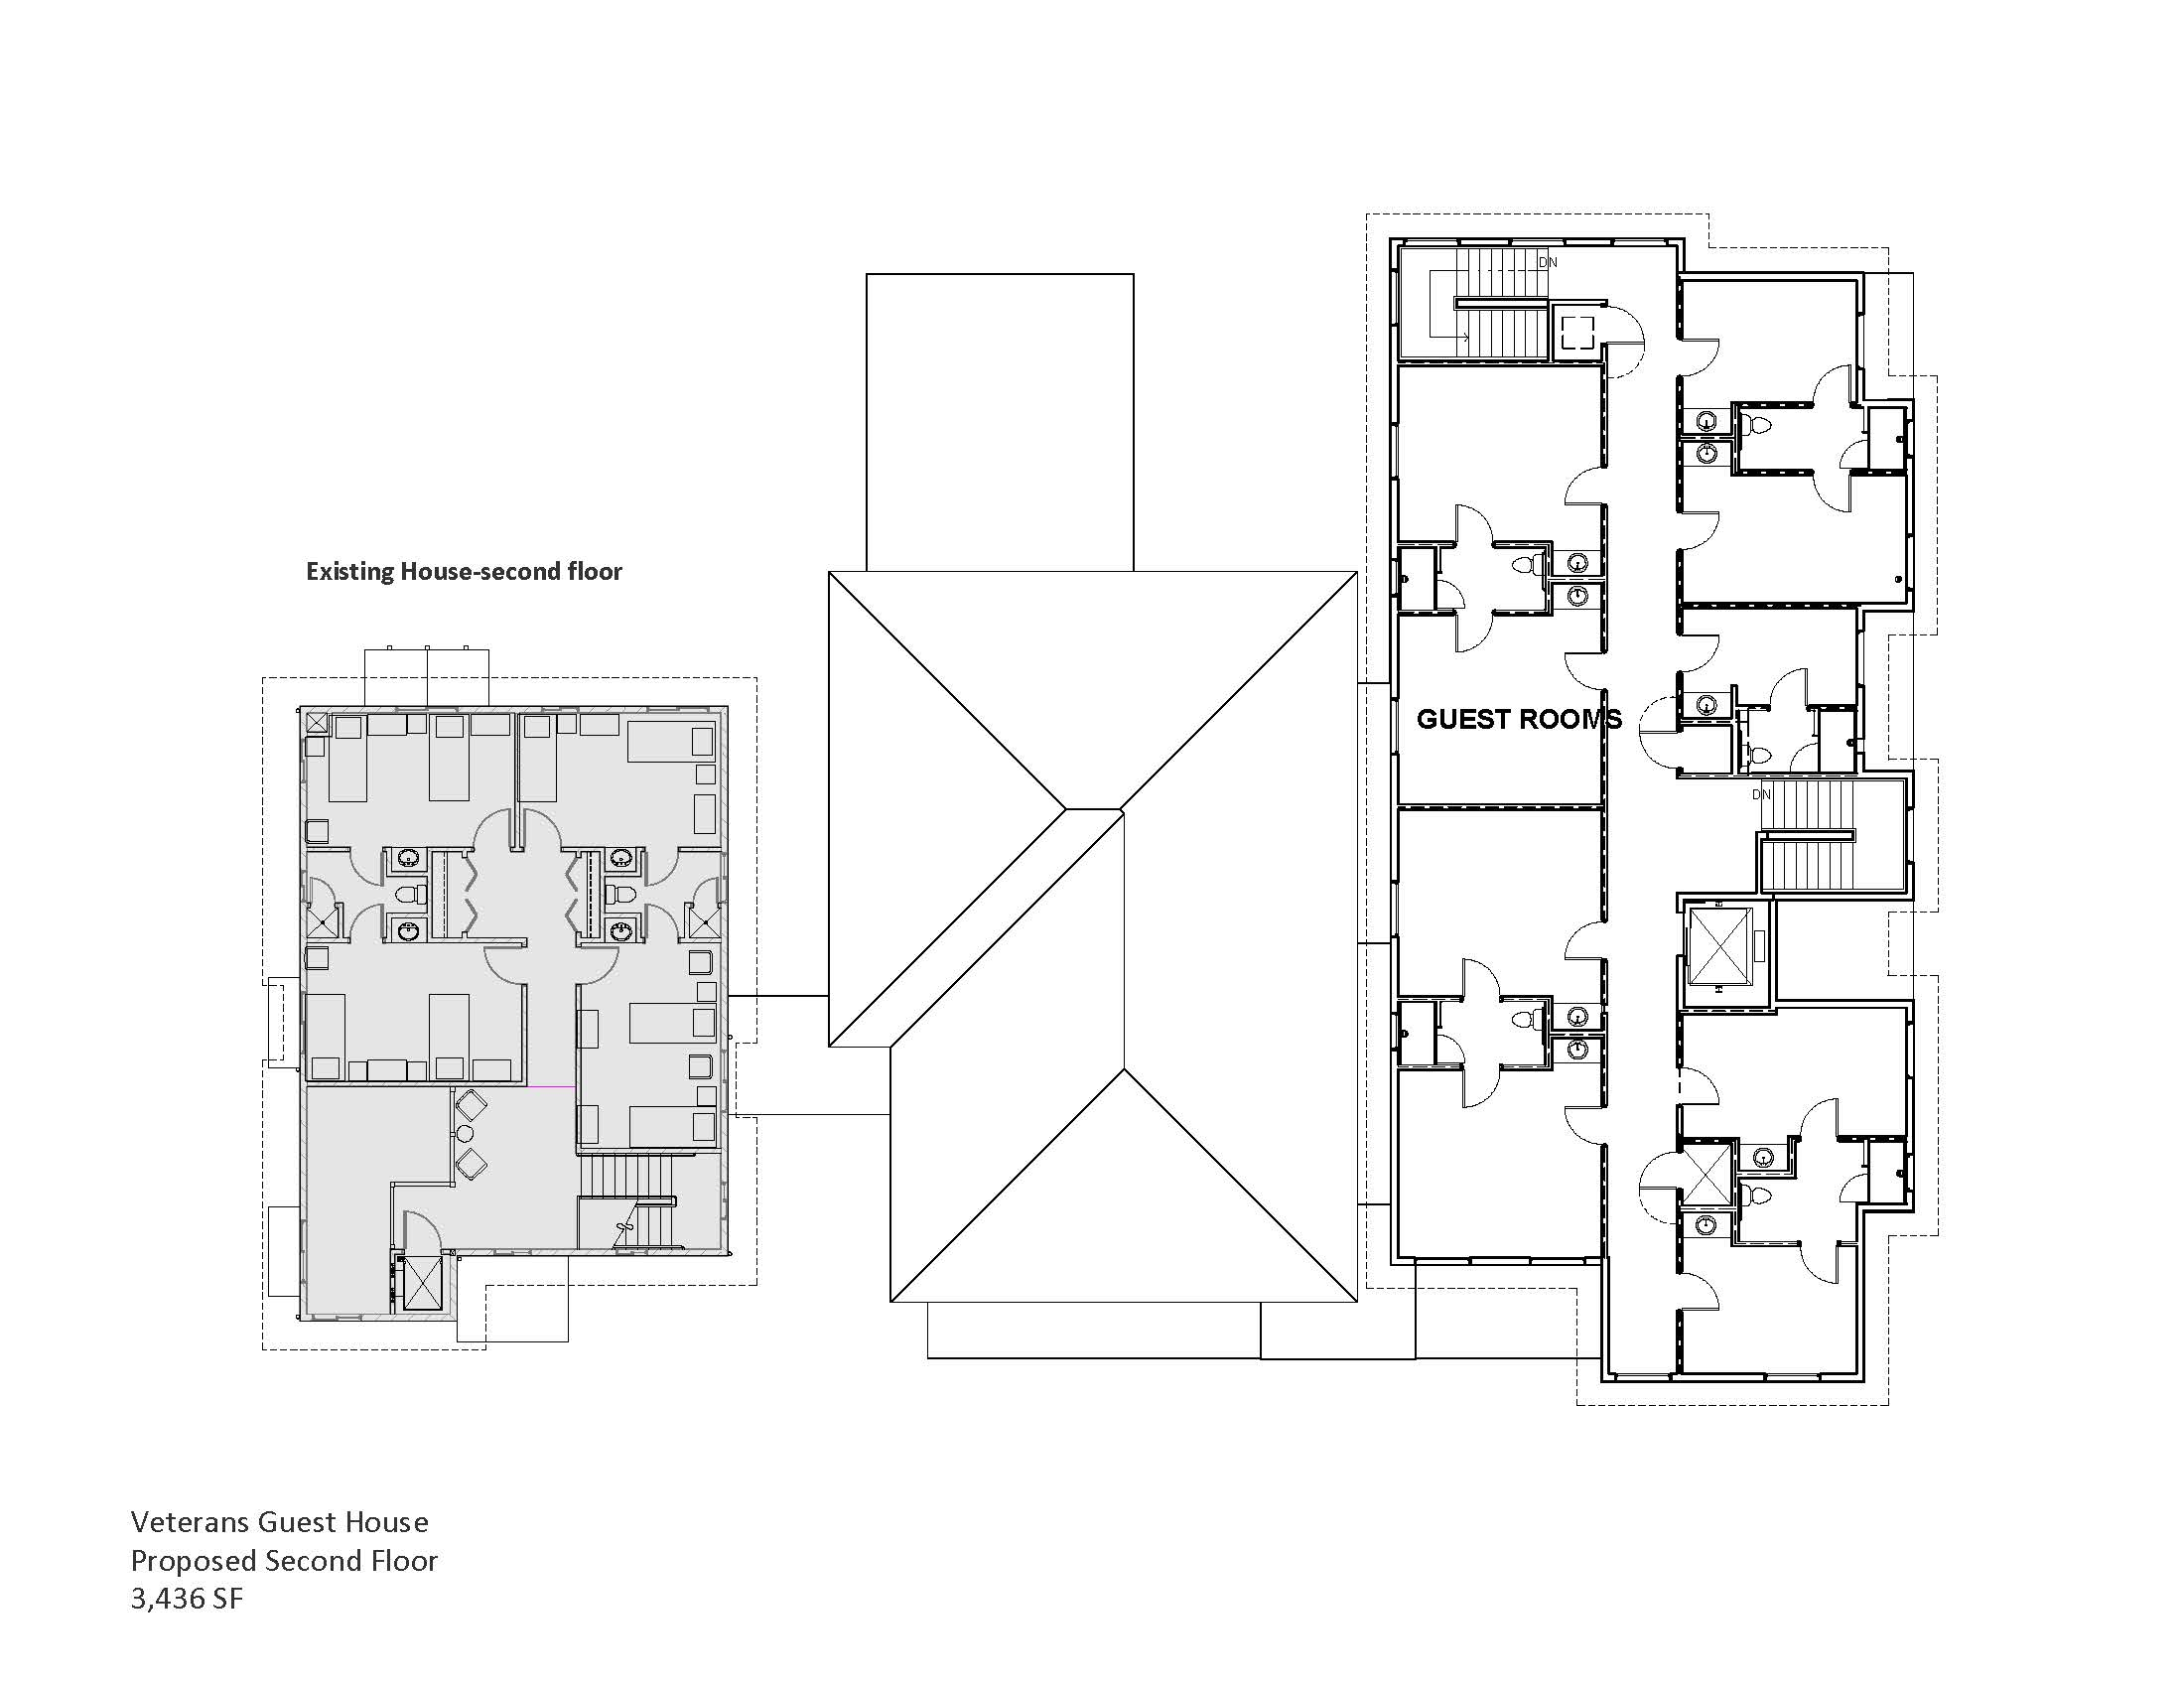 Proposed Second Floor